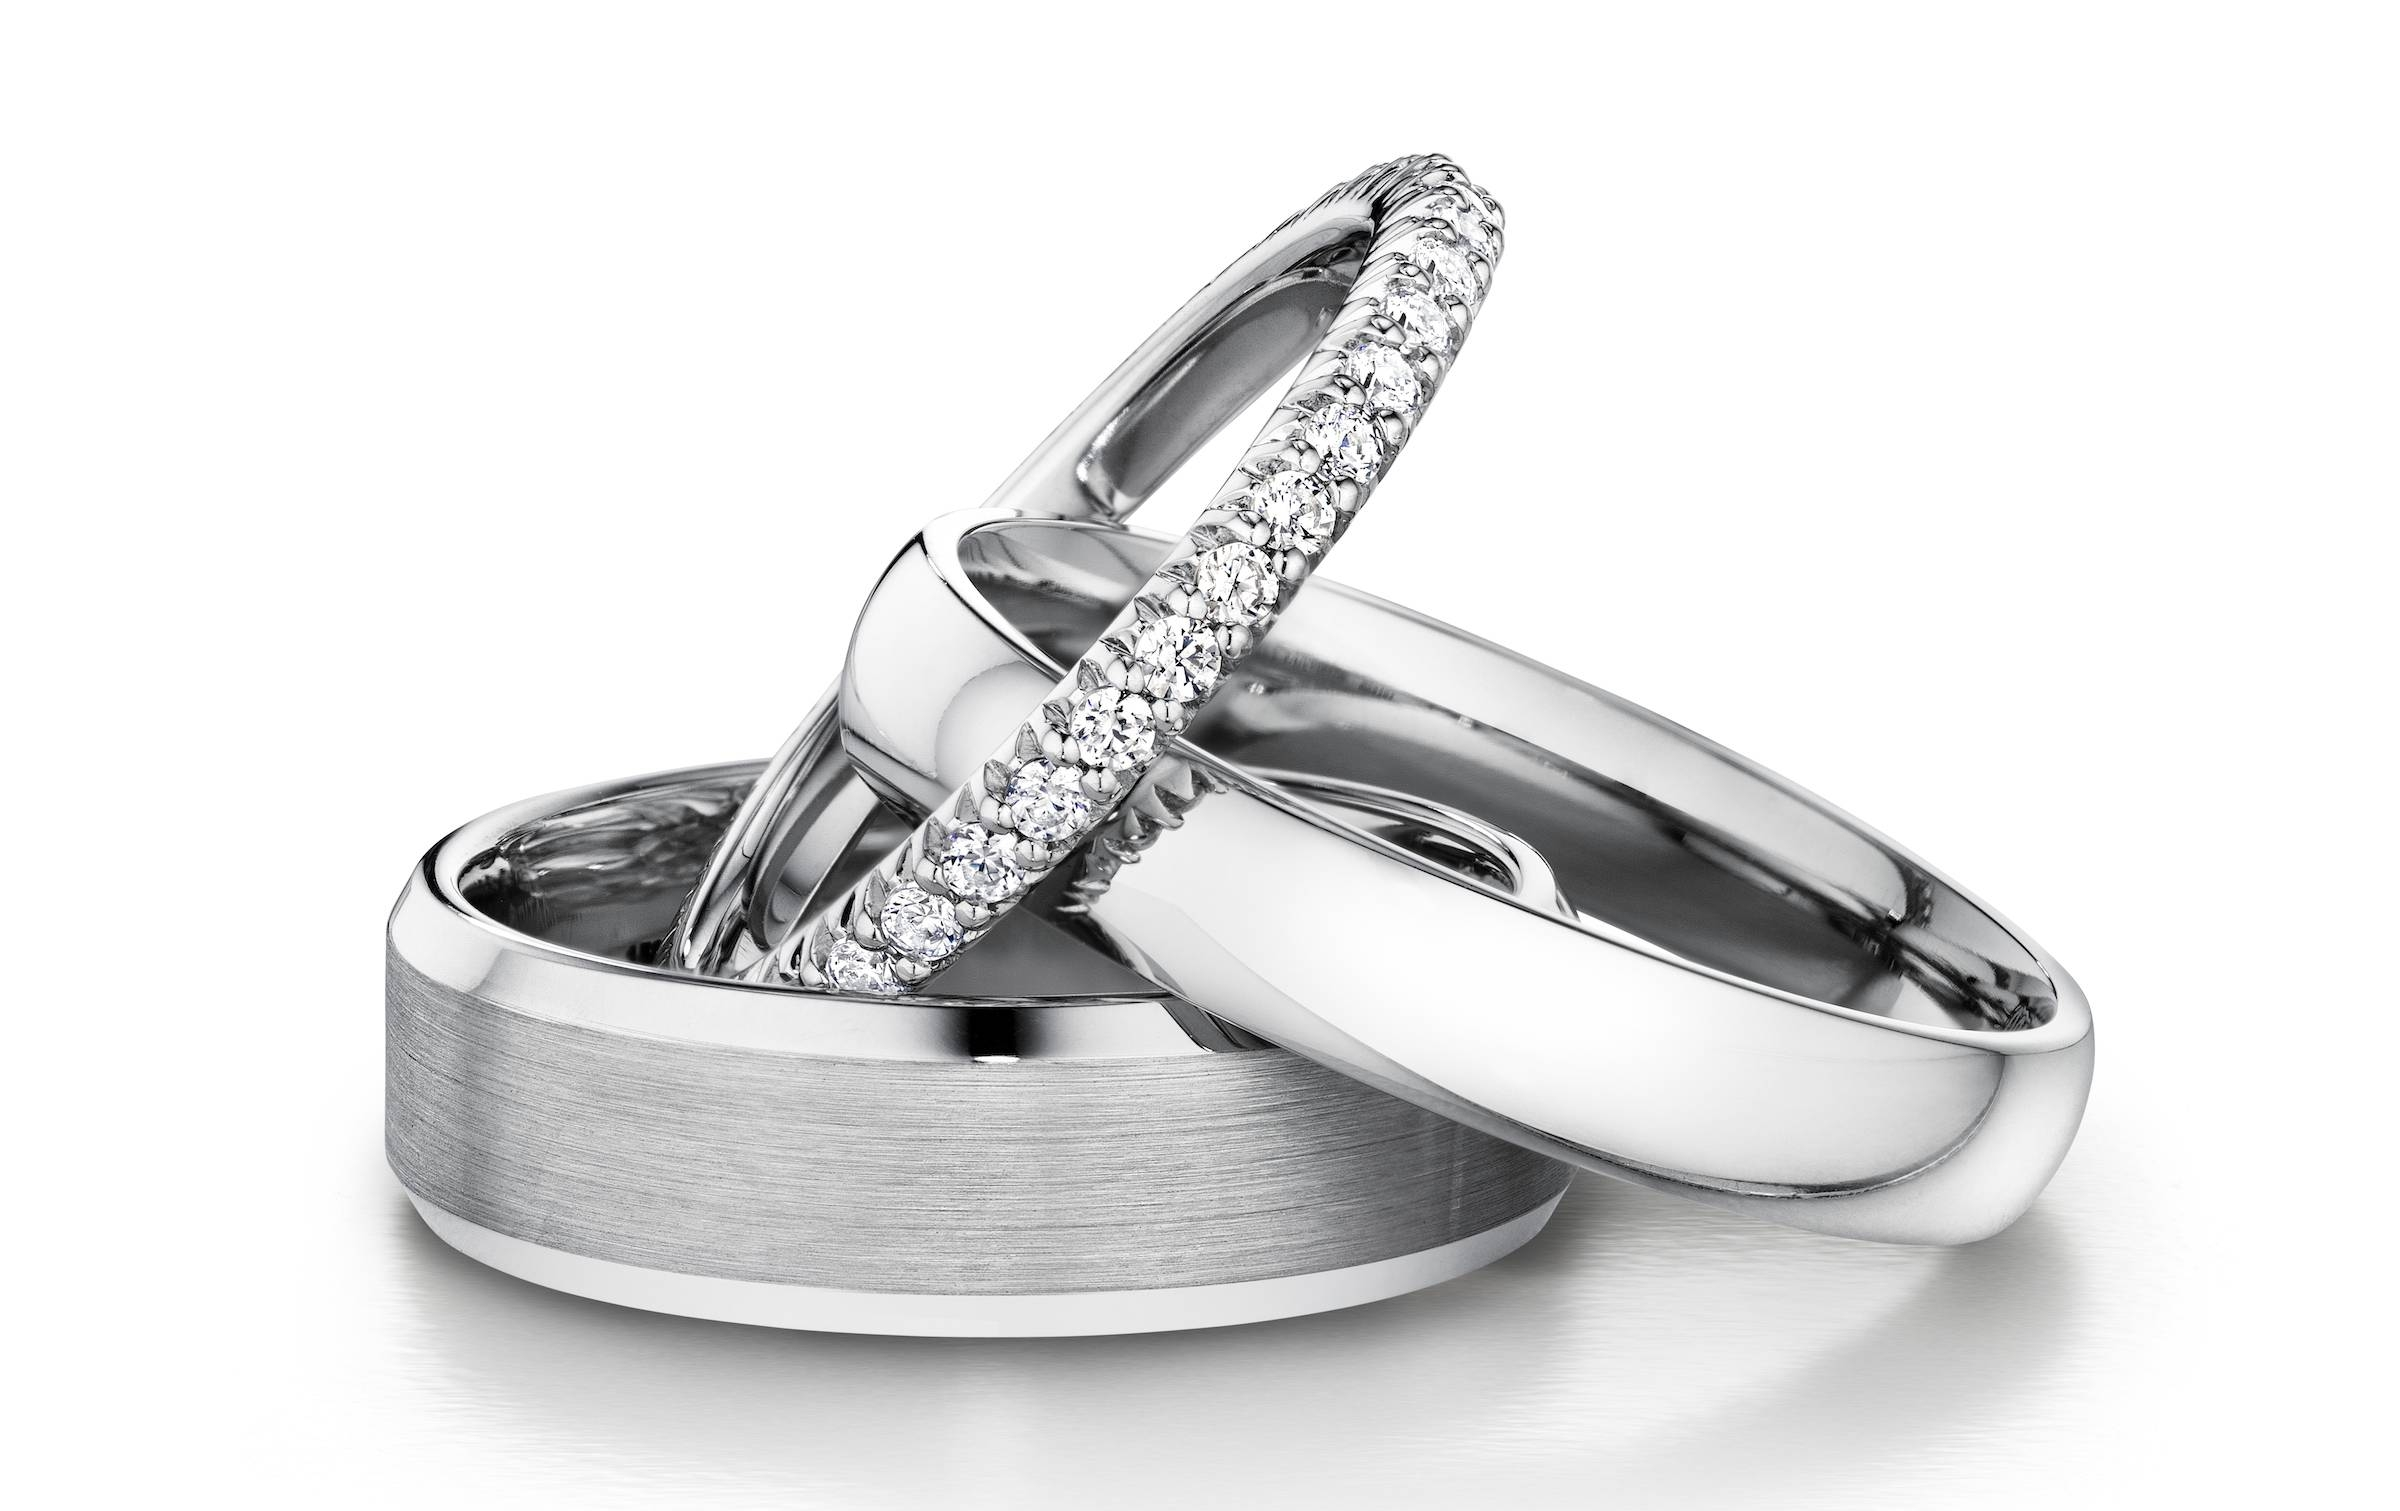 The Top 10 Most Popular Men's Wedding Bands Of 2015 | Ritani Regarding Top Men's Wedding Bands (View 11 of 15)